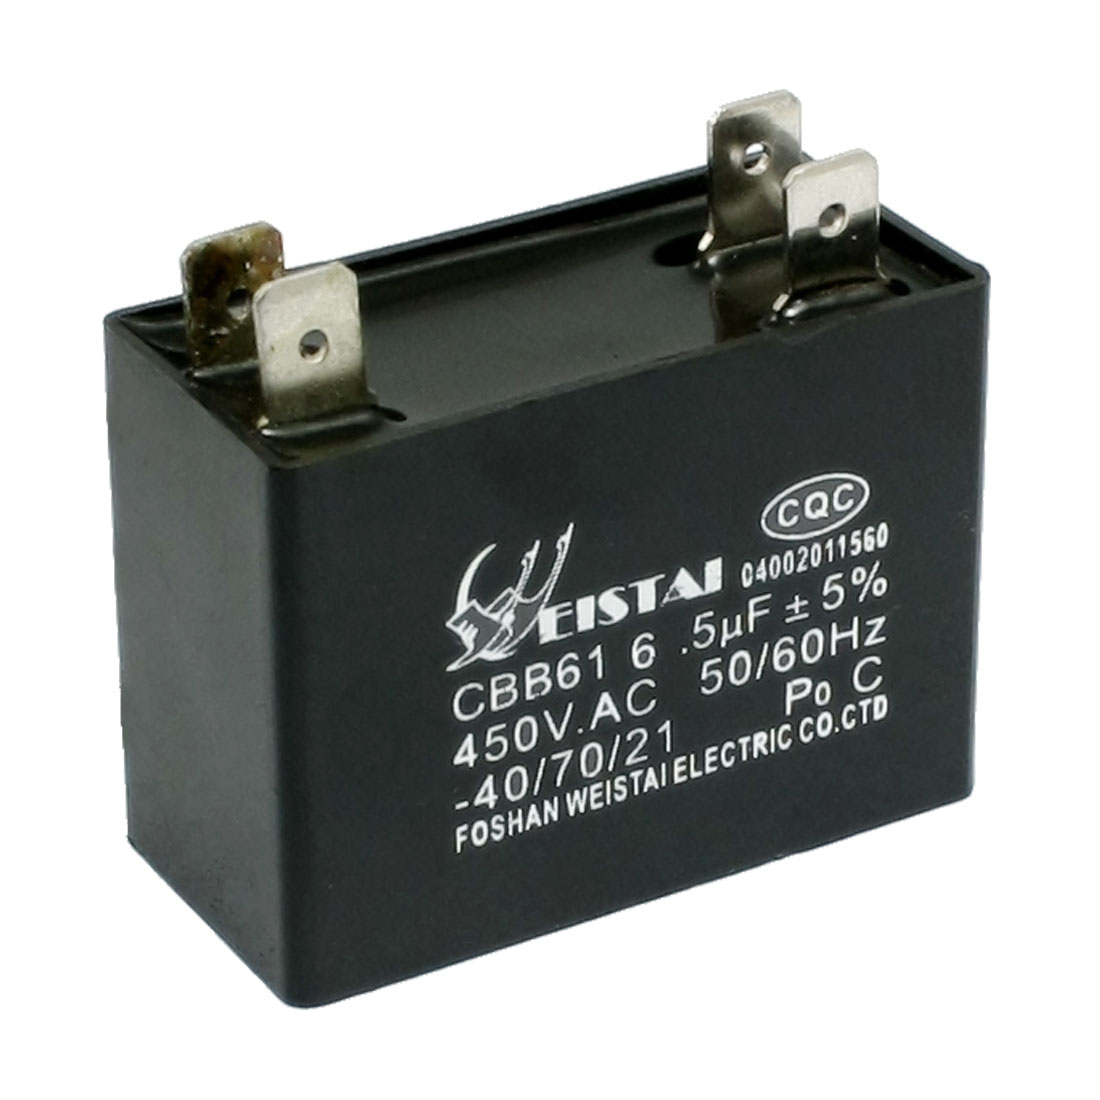 CBB61 6.5uF 50/60Hz DIP 4 Pins Motor Run Capacitor AC 450V